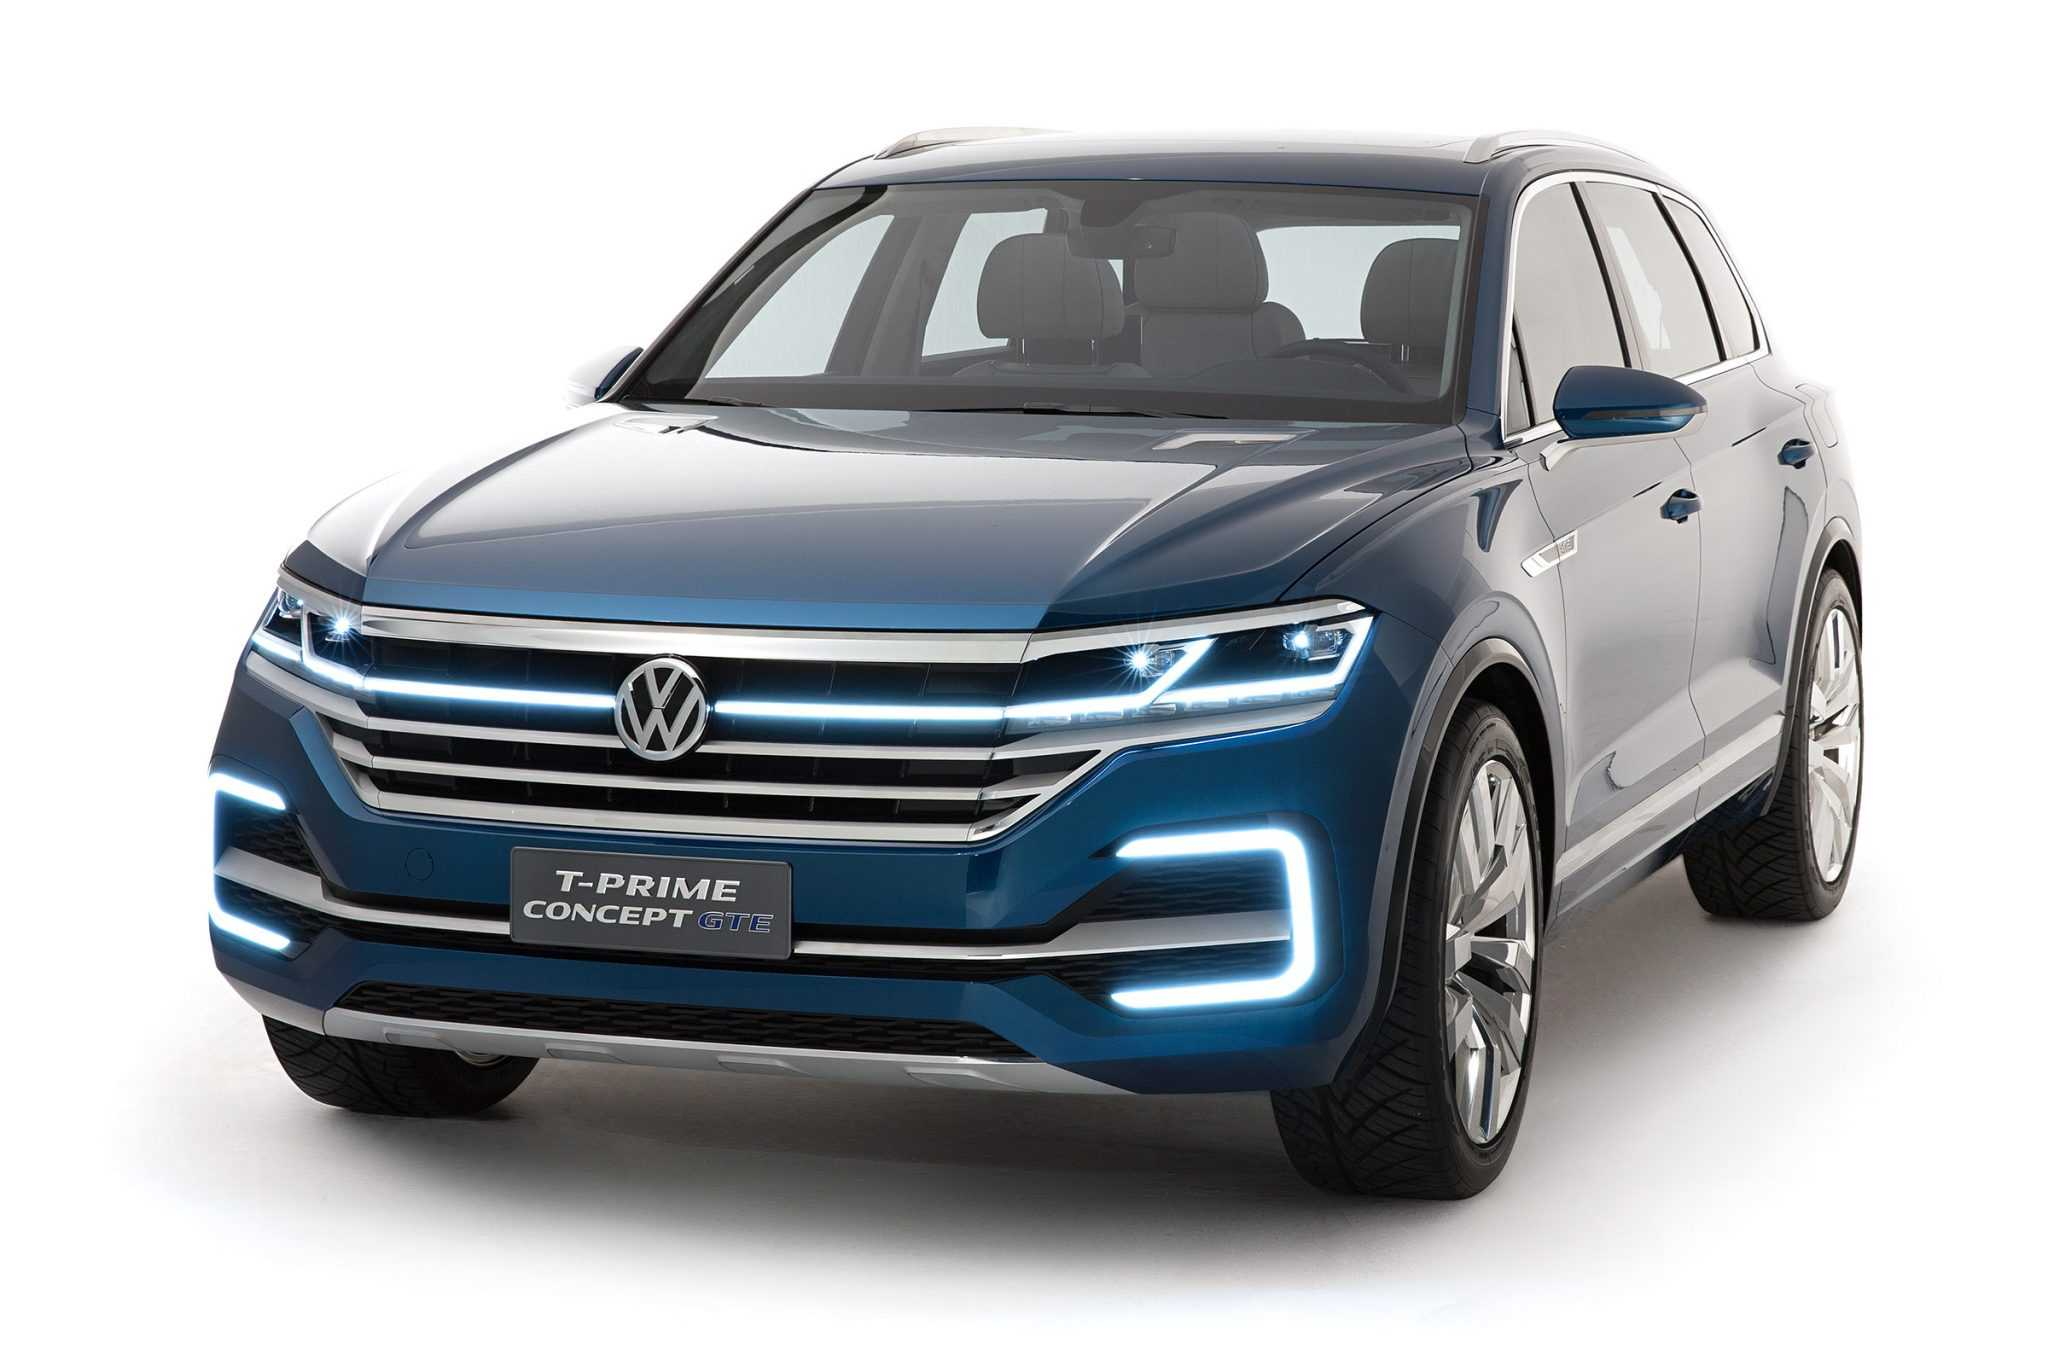 2017 volkswagen touareg gets refreshed with t prime concept. Black Bedroom Furniture Sets. Home Design Ideas